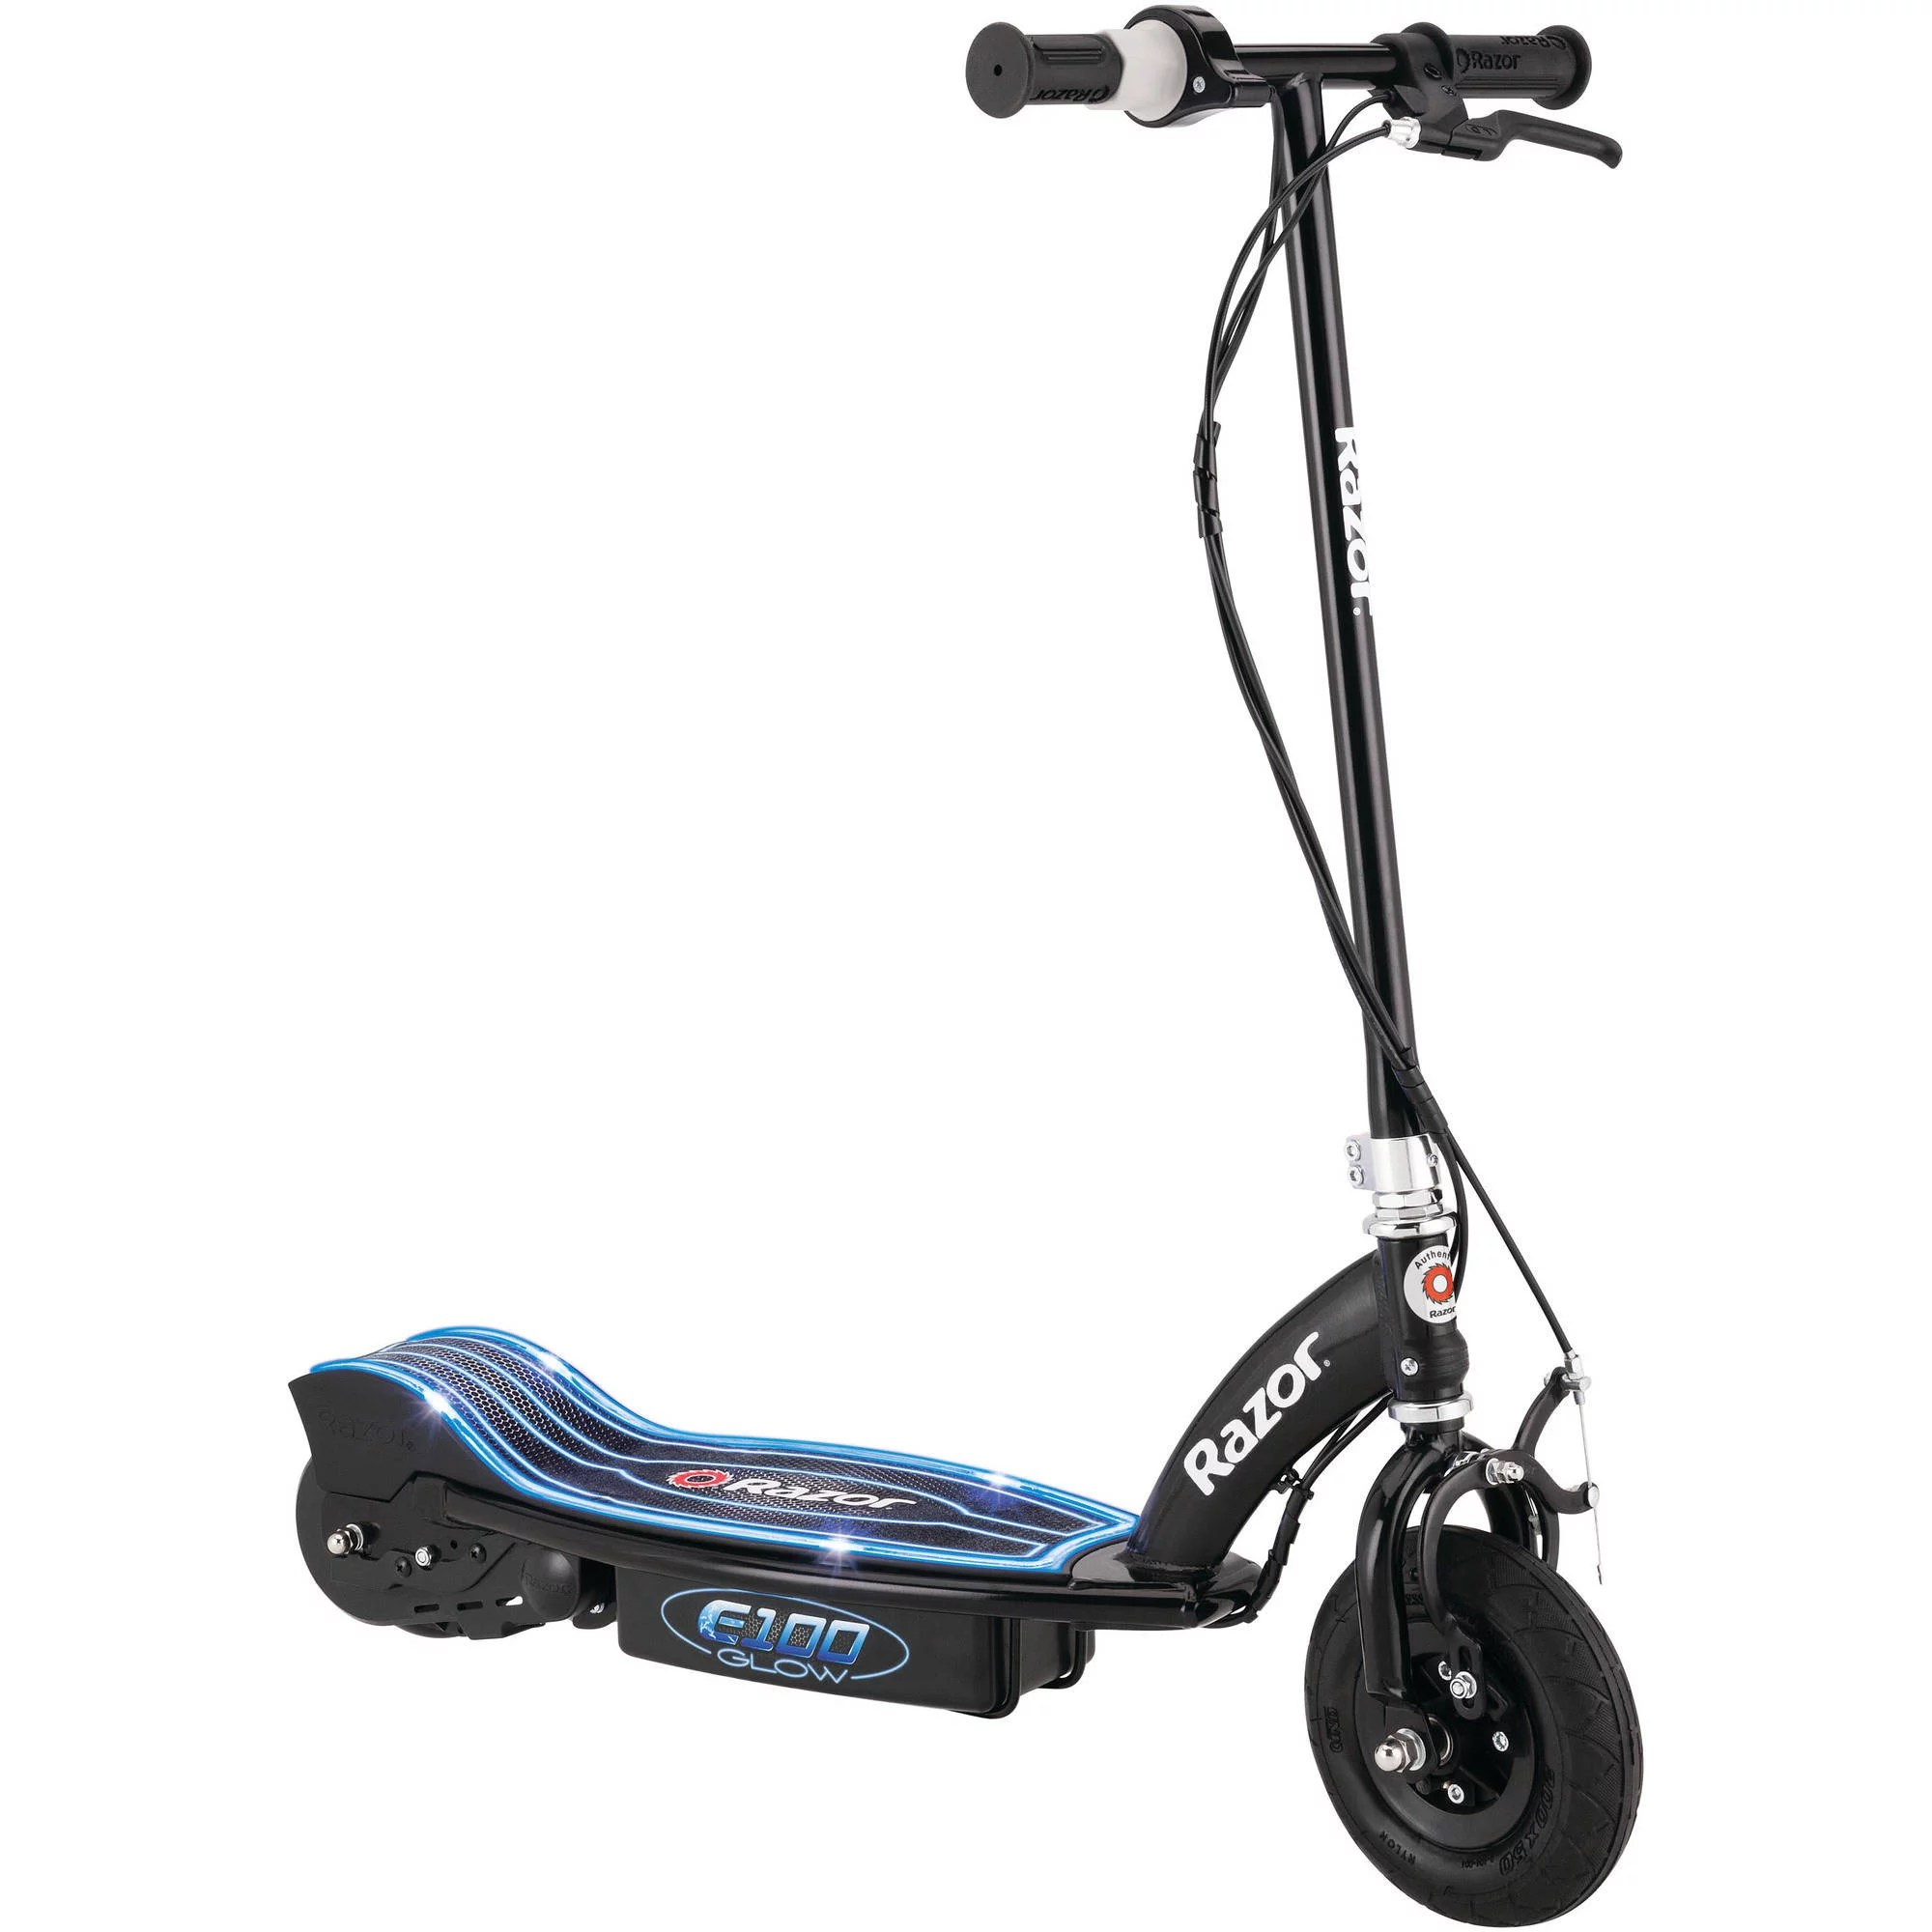 medium resolution of walmart for product image razor e100 electric powered glow electric scooter black satellite electric scooter razor wiring diagram